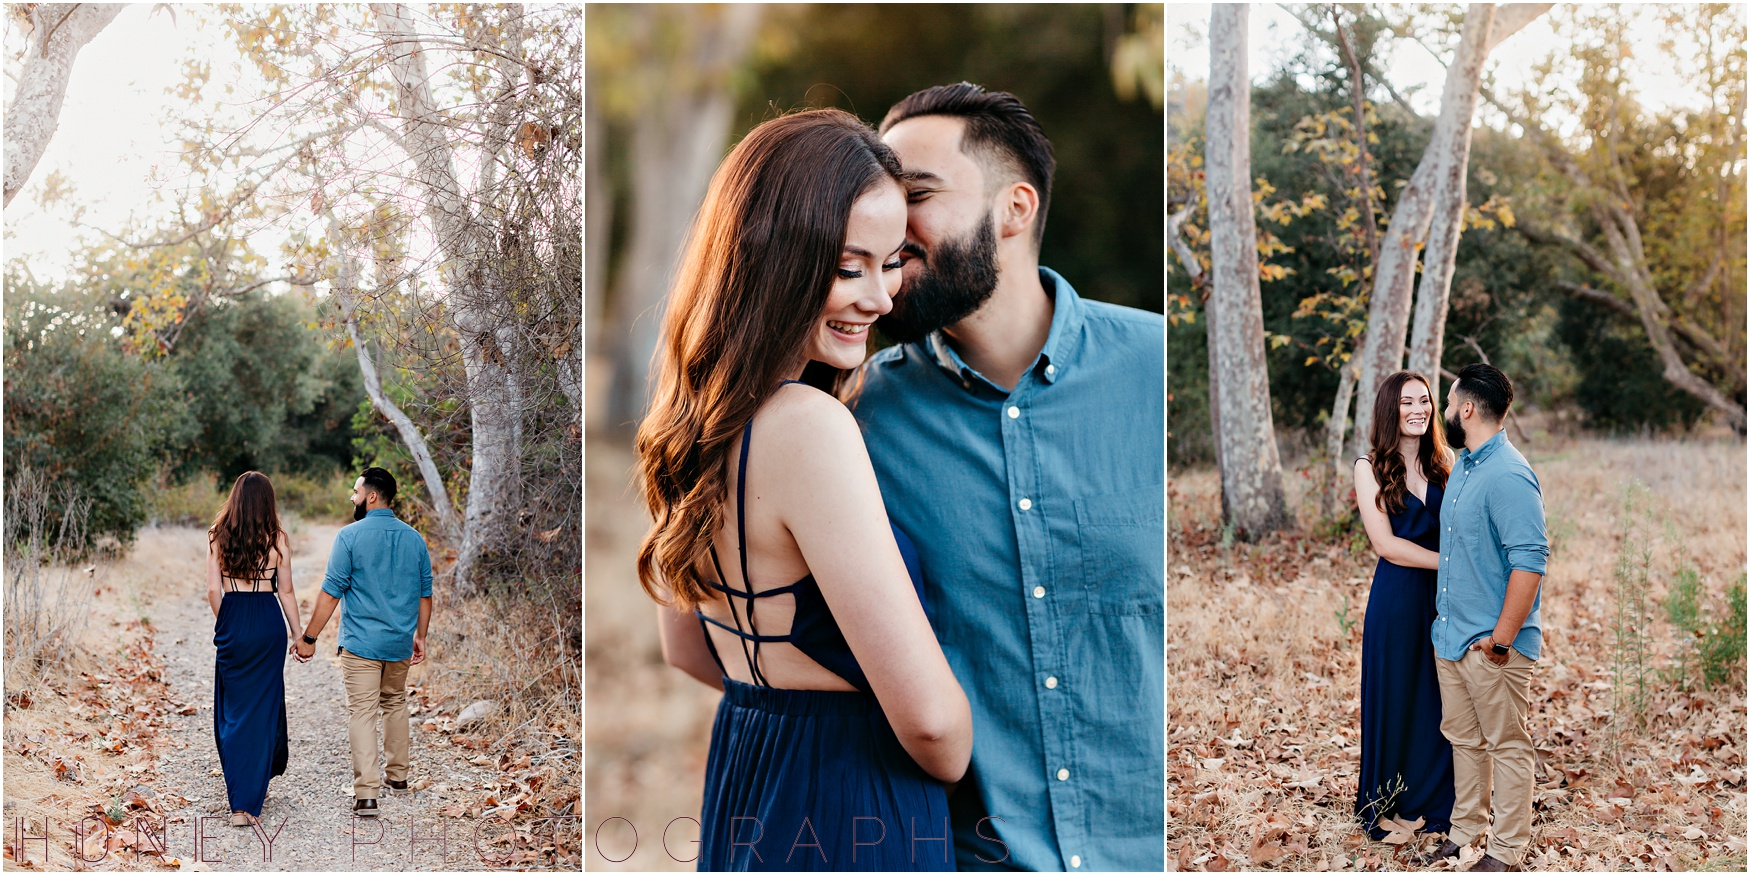 marian_bear_sunset_woods_san_diego_engagement015.jpg